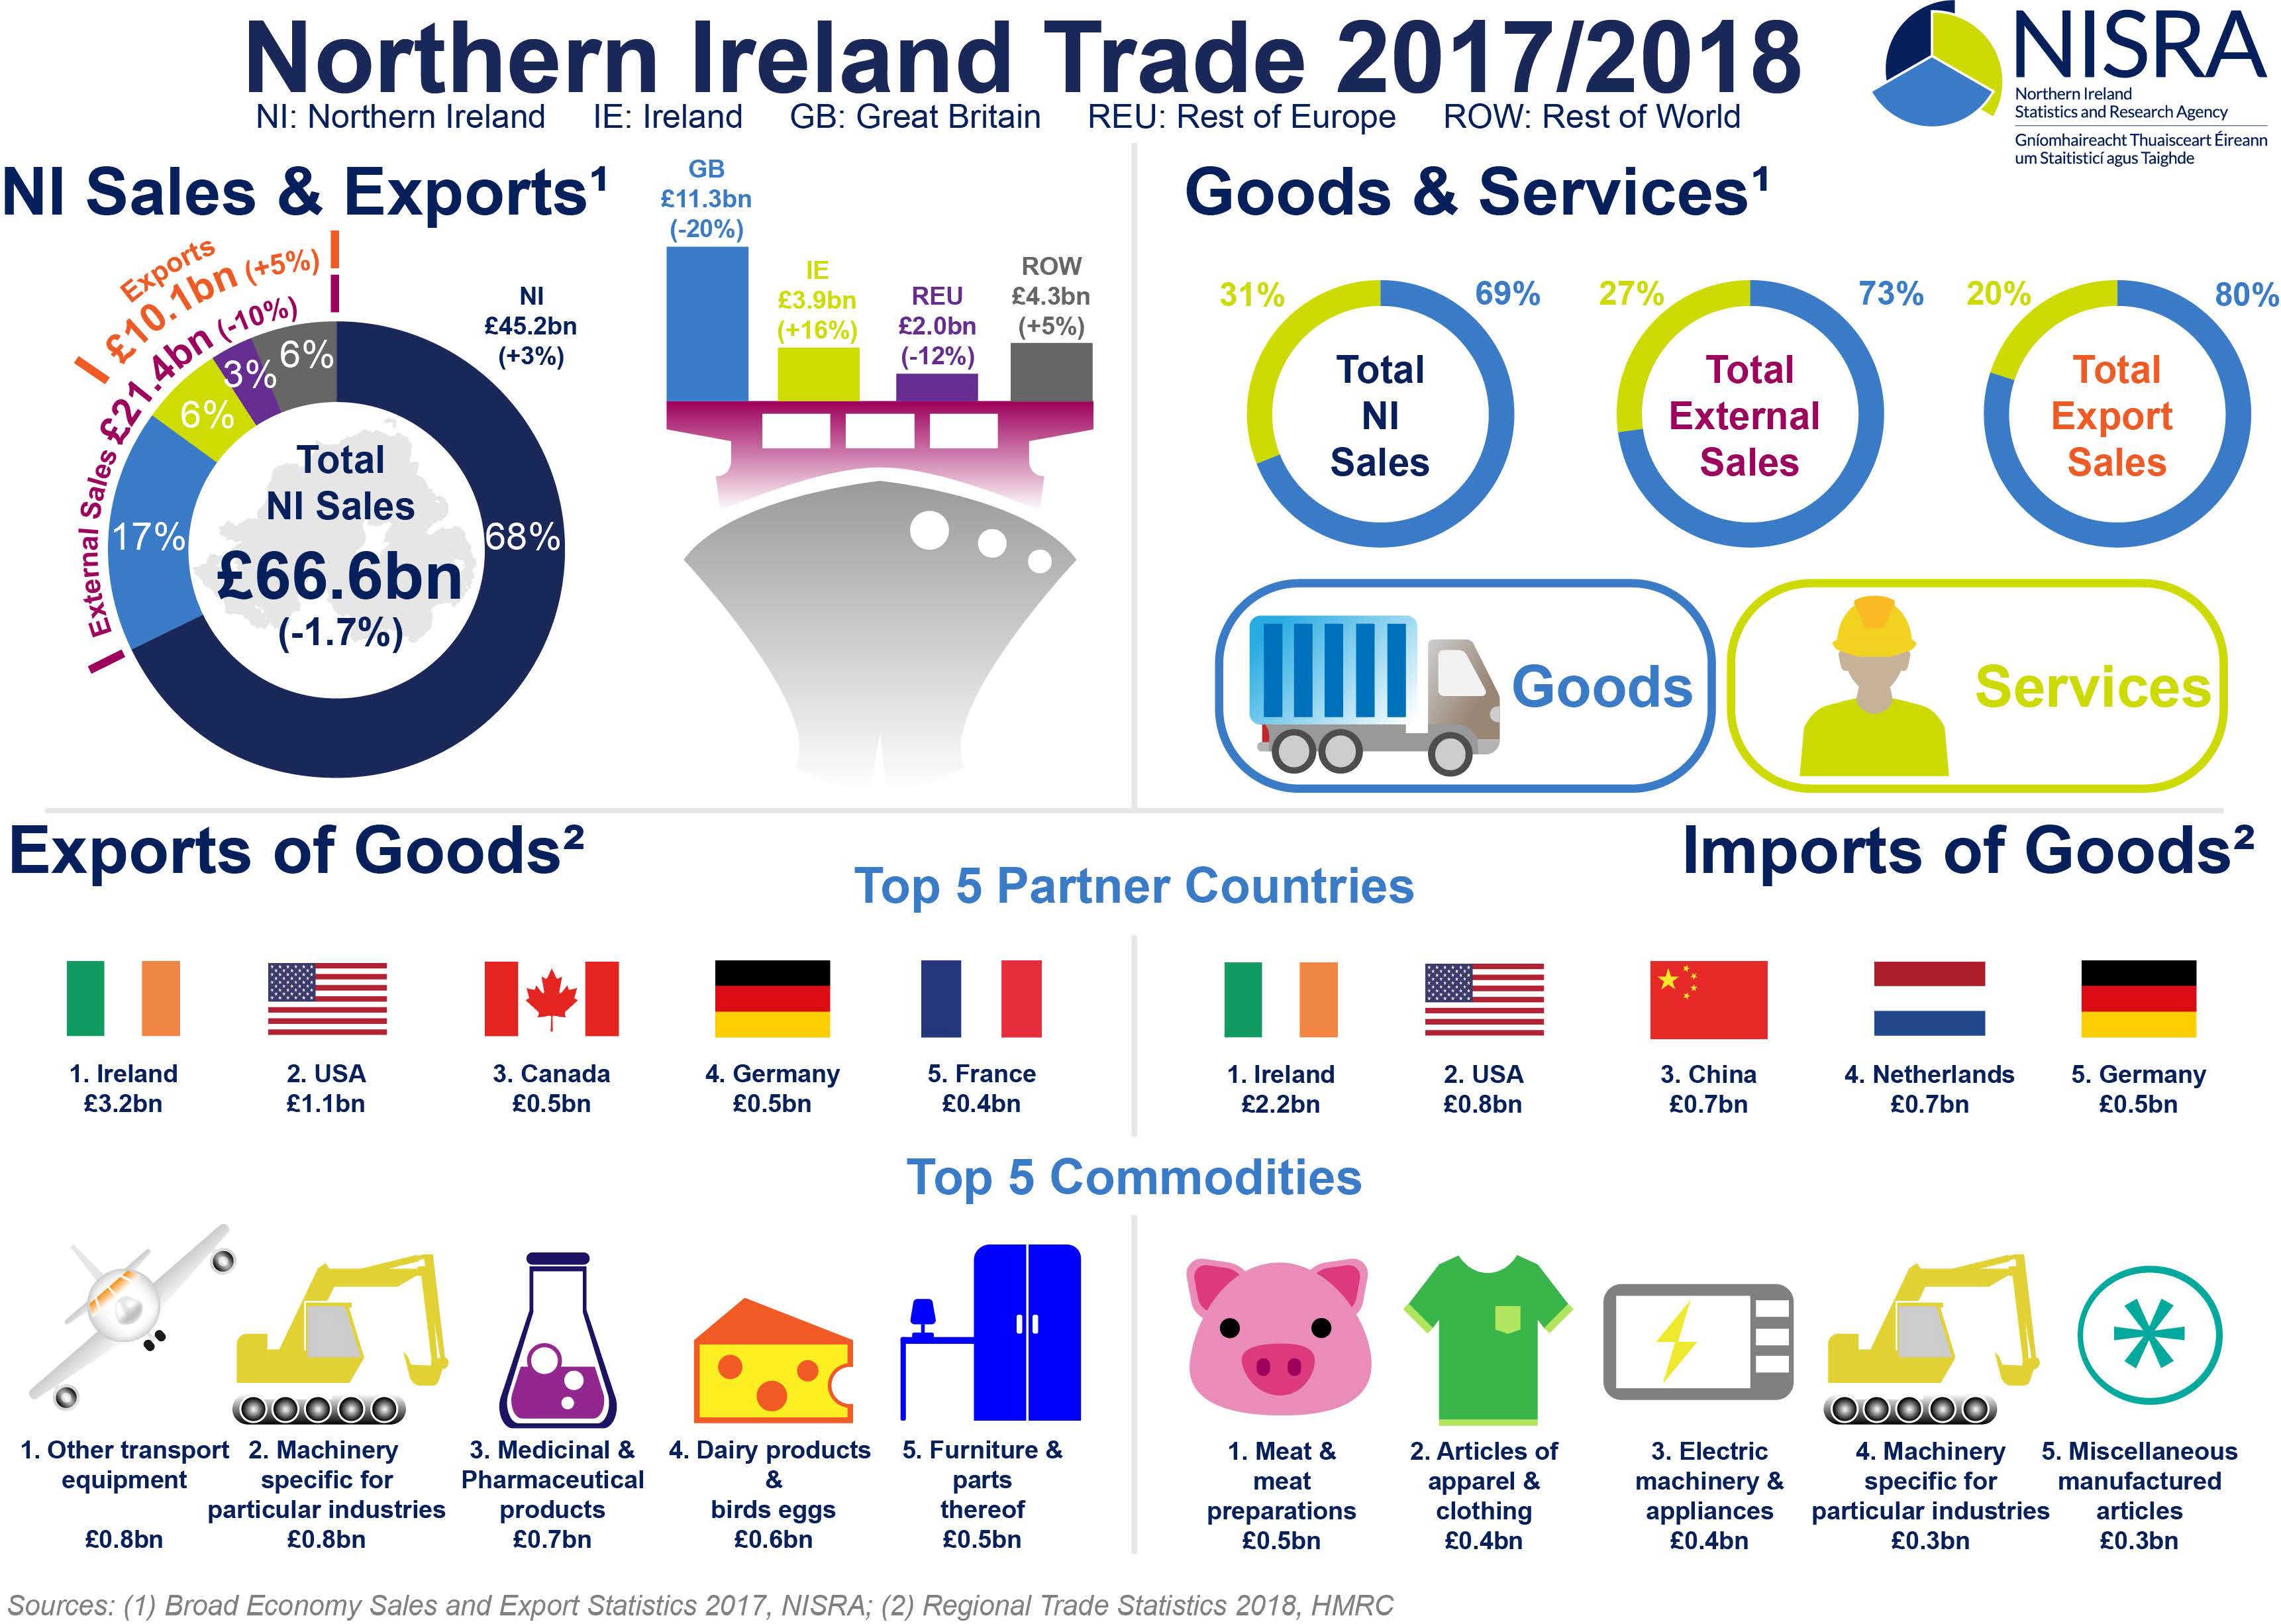 Overview of Northern Ireland Trade Infographic